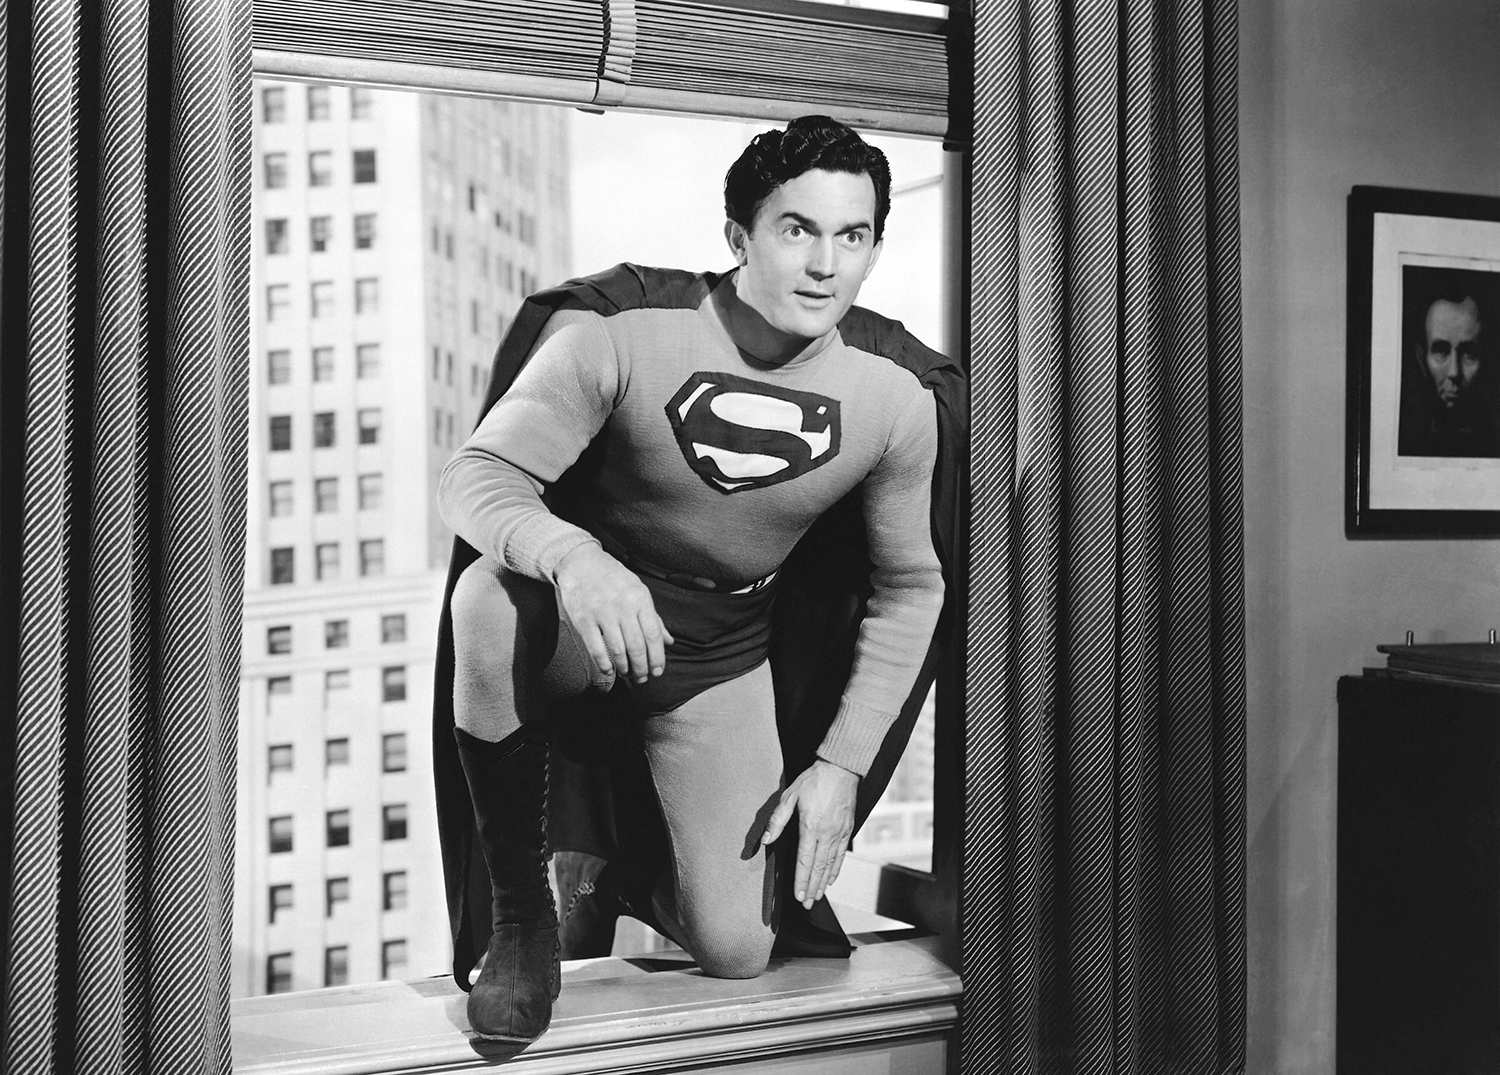 Kirk Alyn played Superman in two early film serials, starting in 1948. He later said, 'Playing Superman ruined my acting career.' (Credit: Everett Collection)